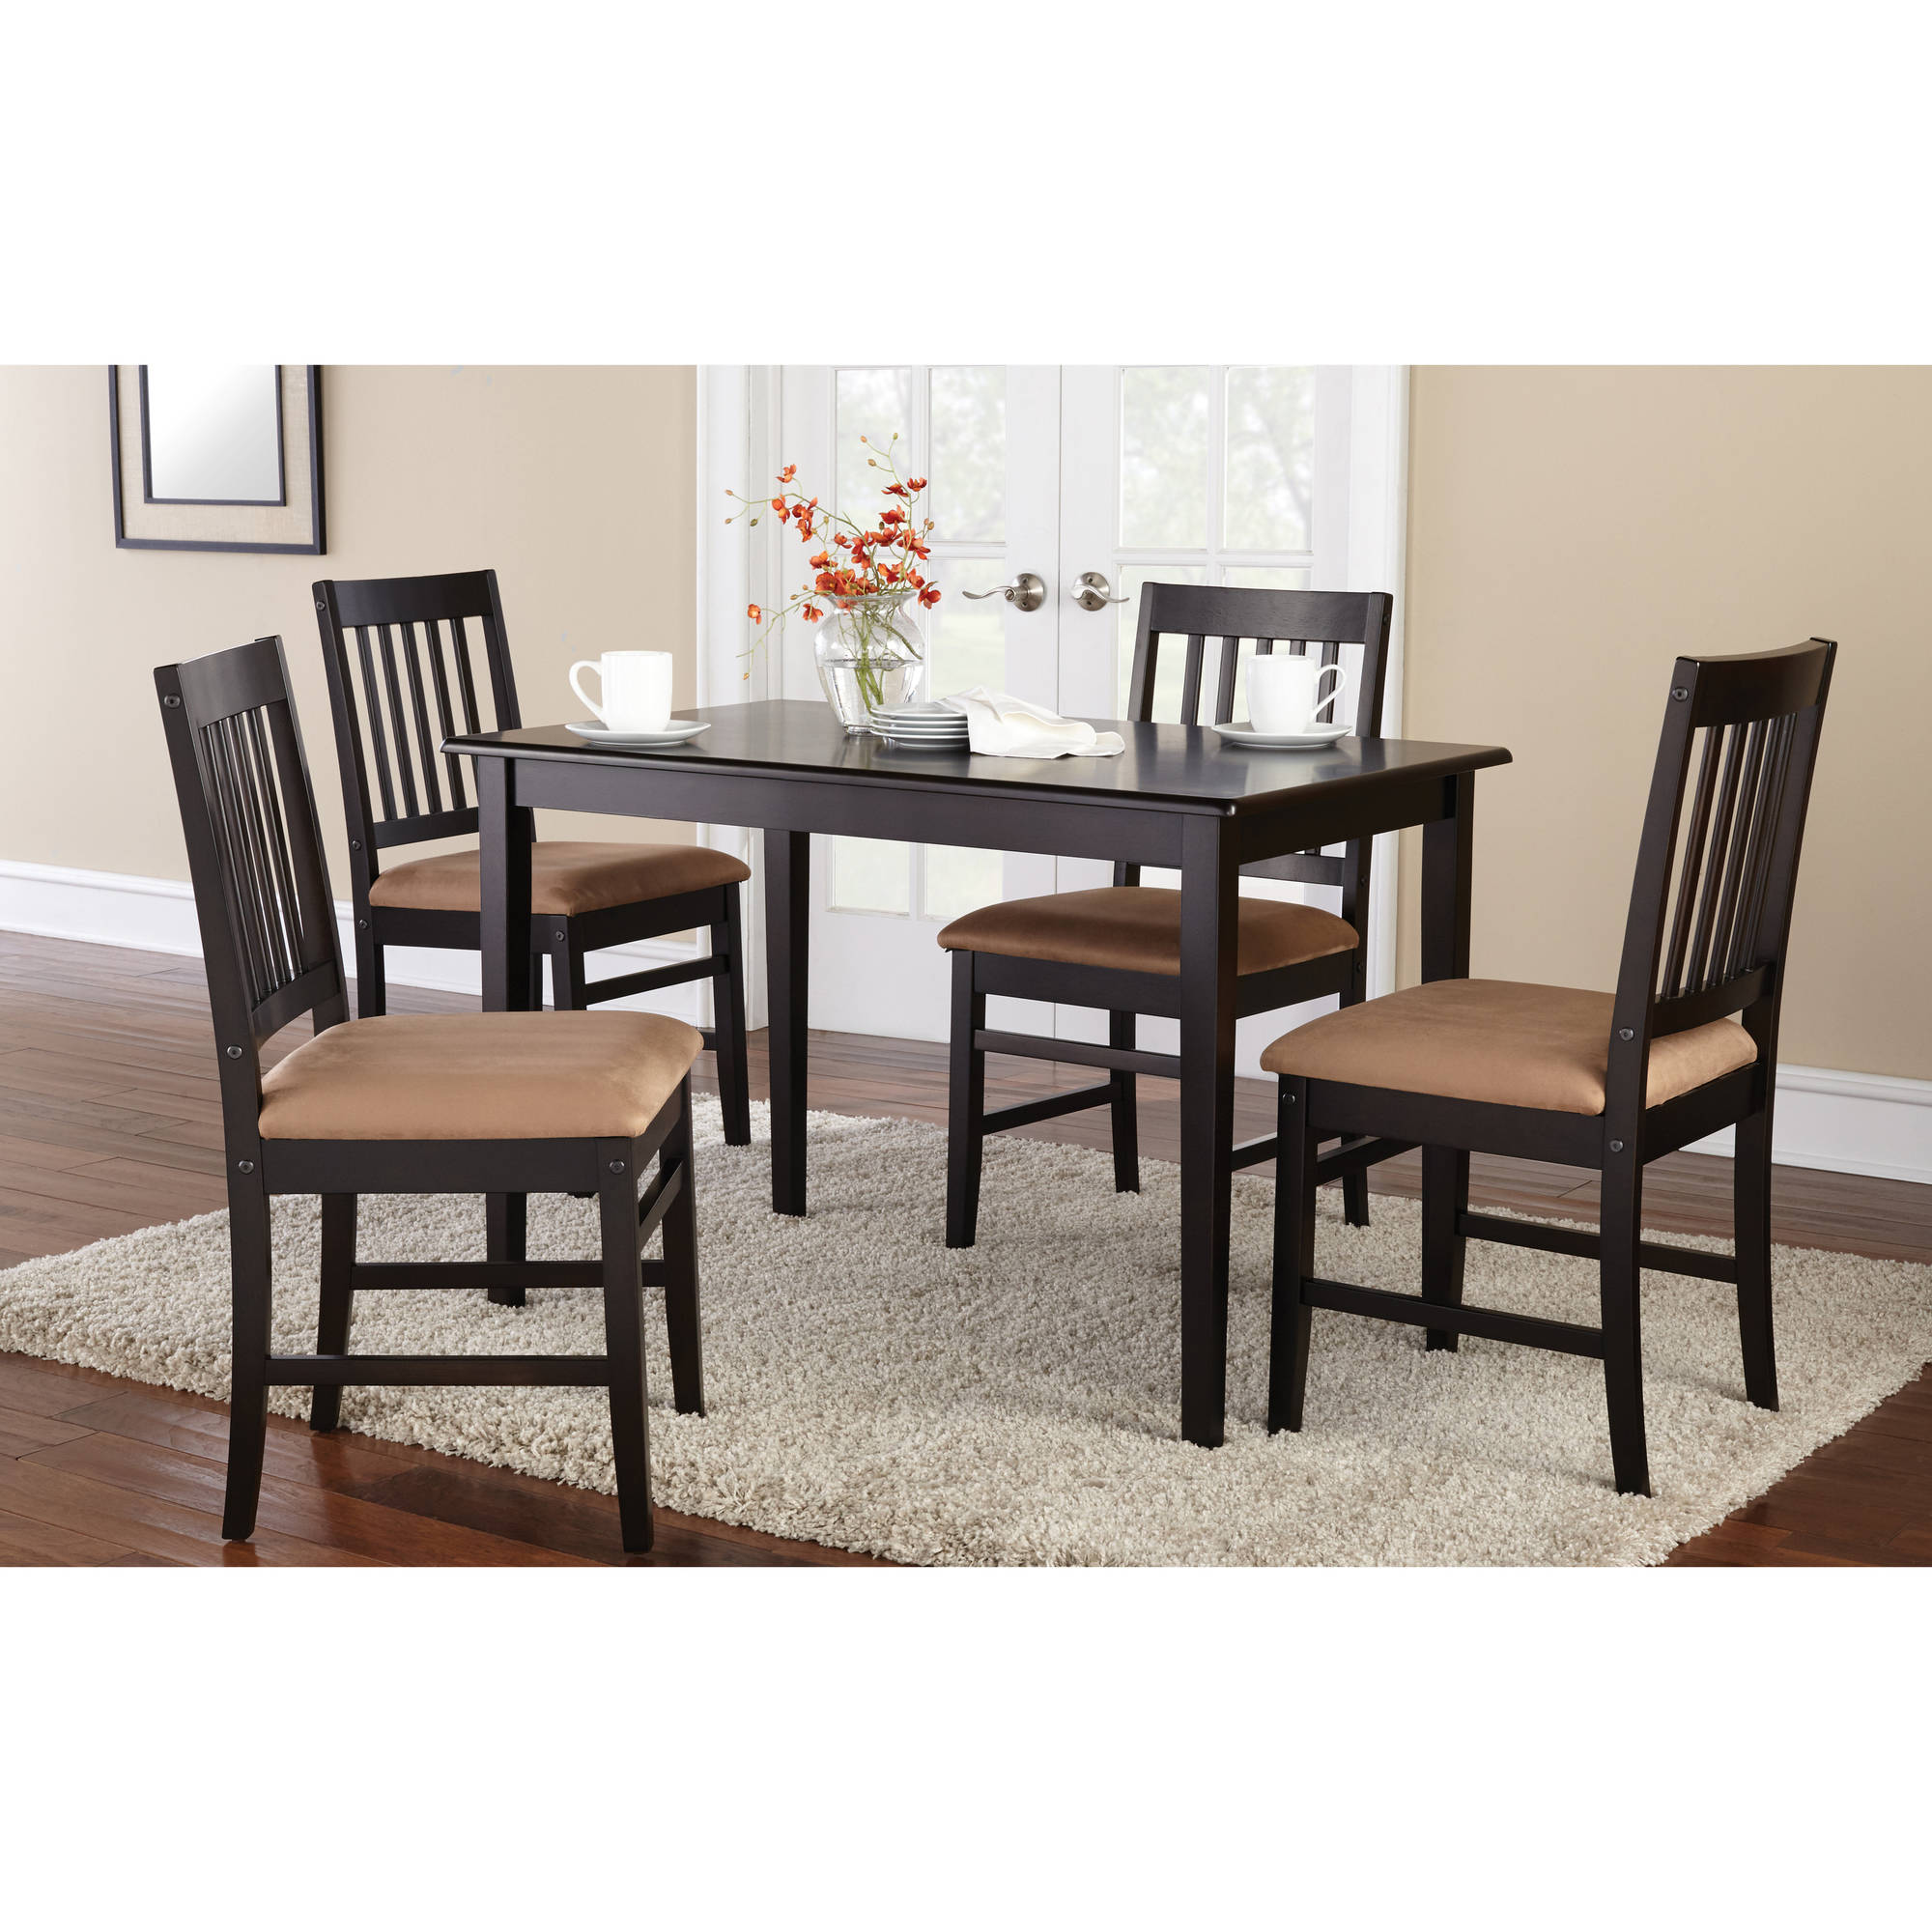 sc 1 st  Walmart & Mainstays 5-Piece Dining Set with Rich Espresso Finish - Walmart.com